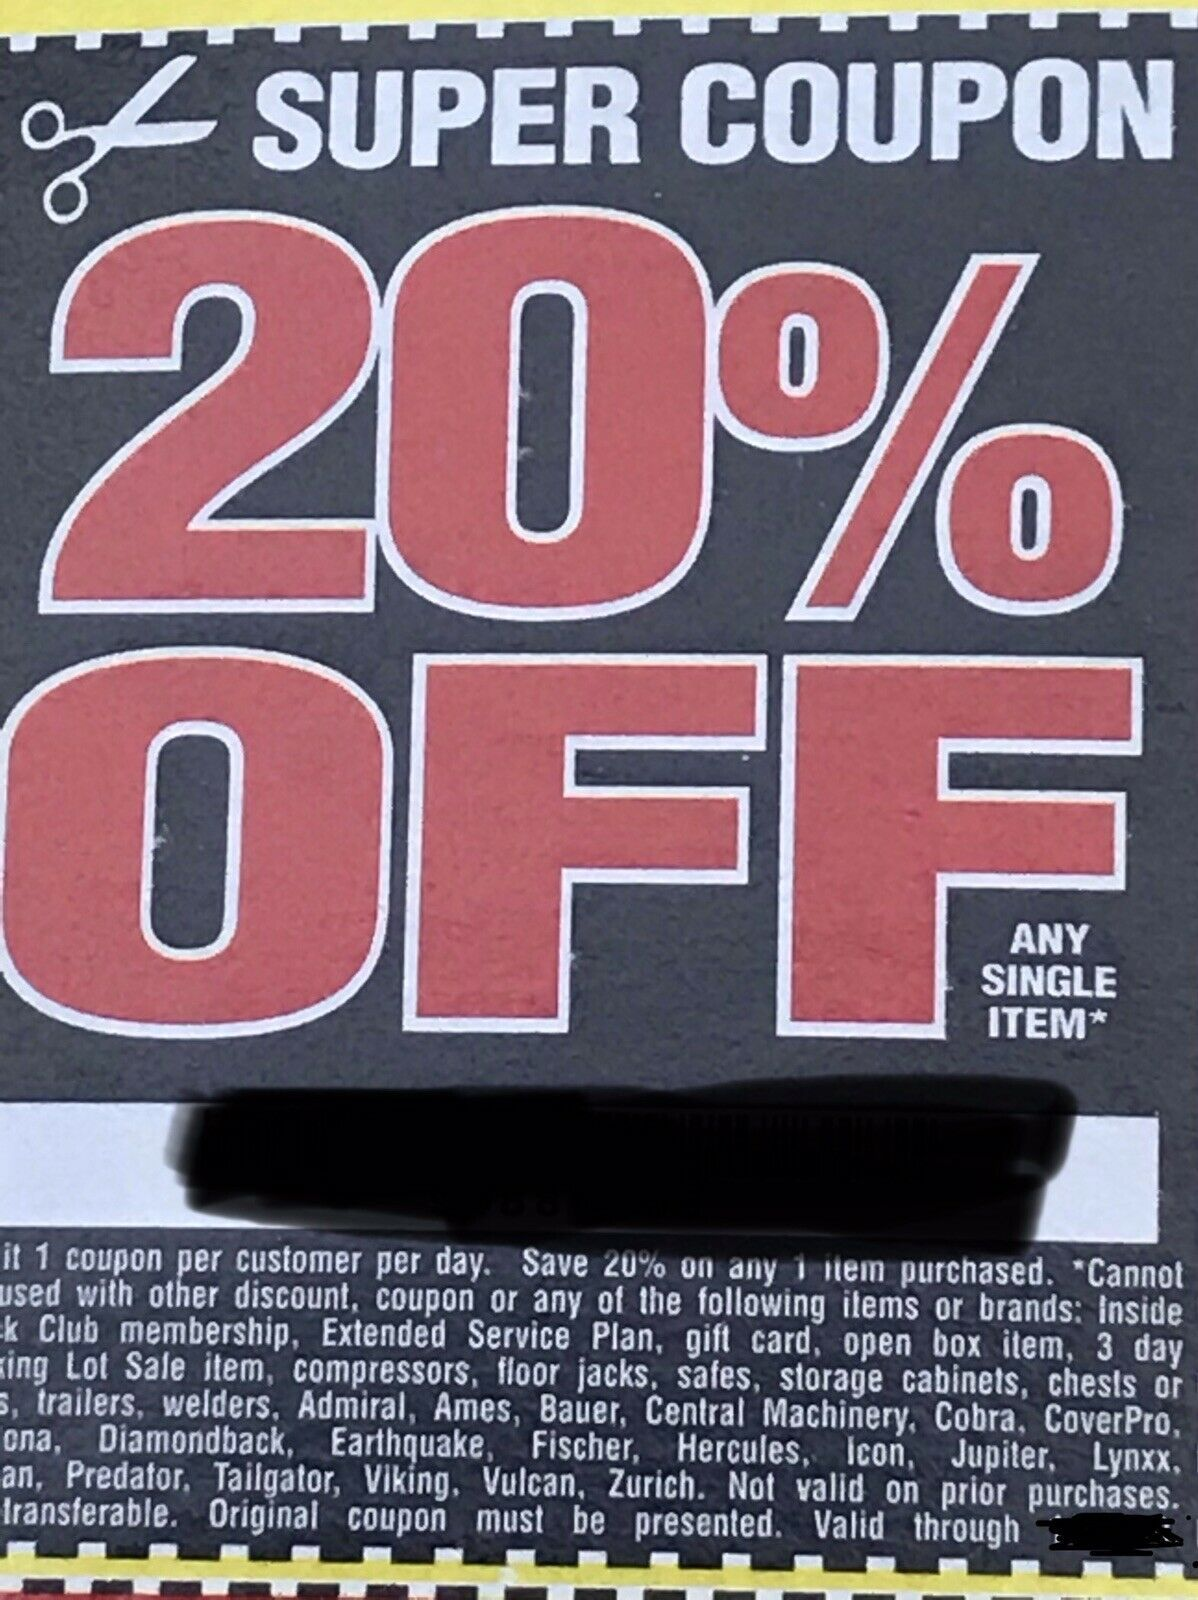 Harbor Freight Coupon For 20 Off Any Single Item Harbor Freight Harbor Freight Coupon Coupons Harbor